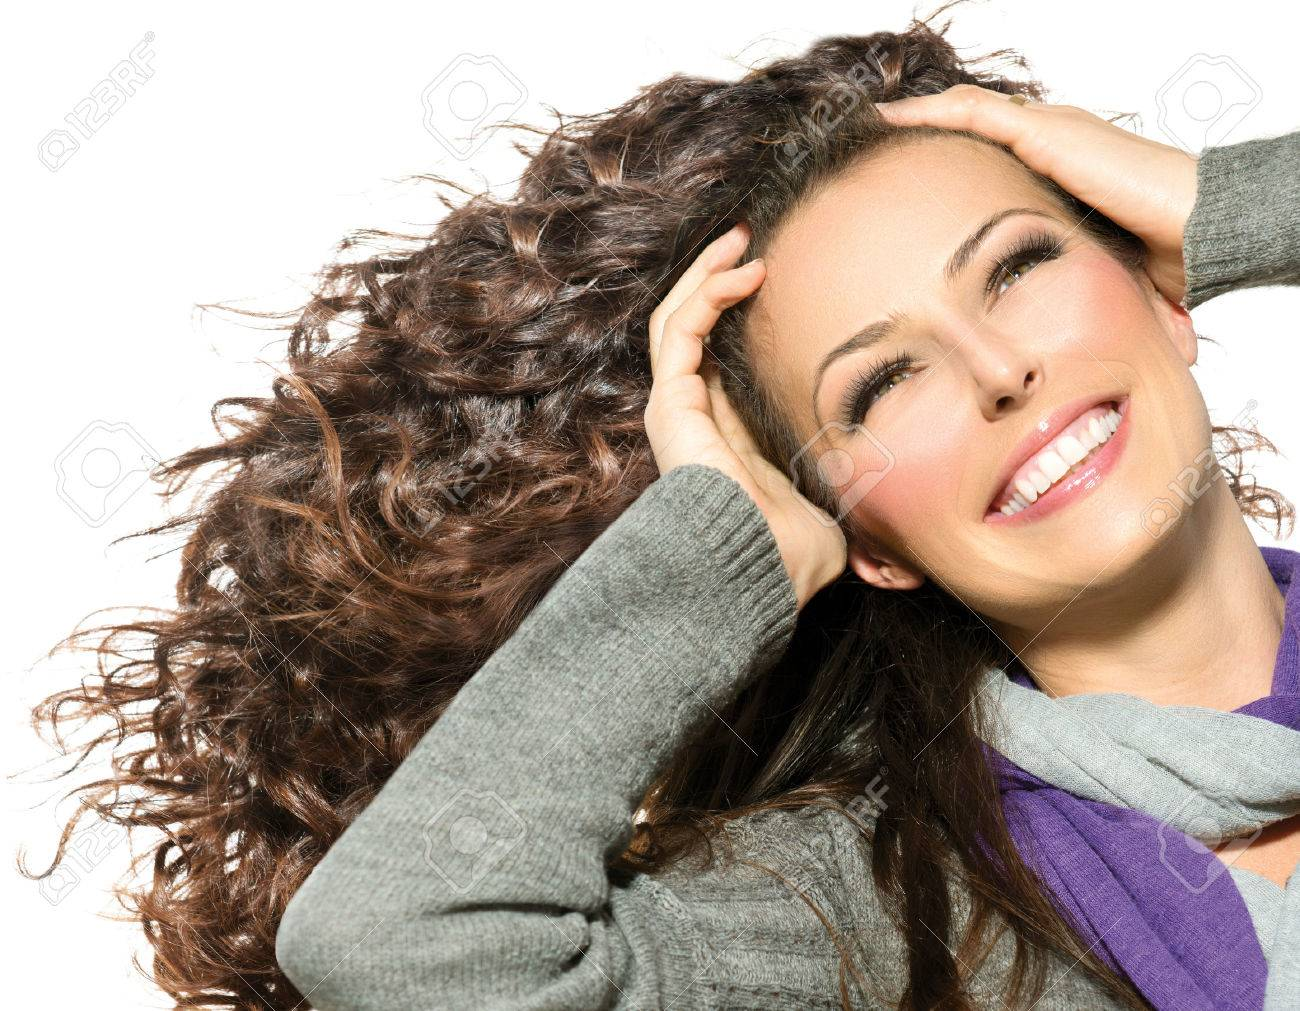 Beauty Woman with Long Curly Hair Healthy Blowing Hair - 22783528